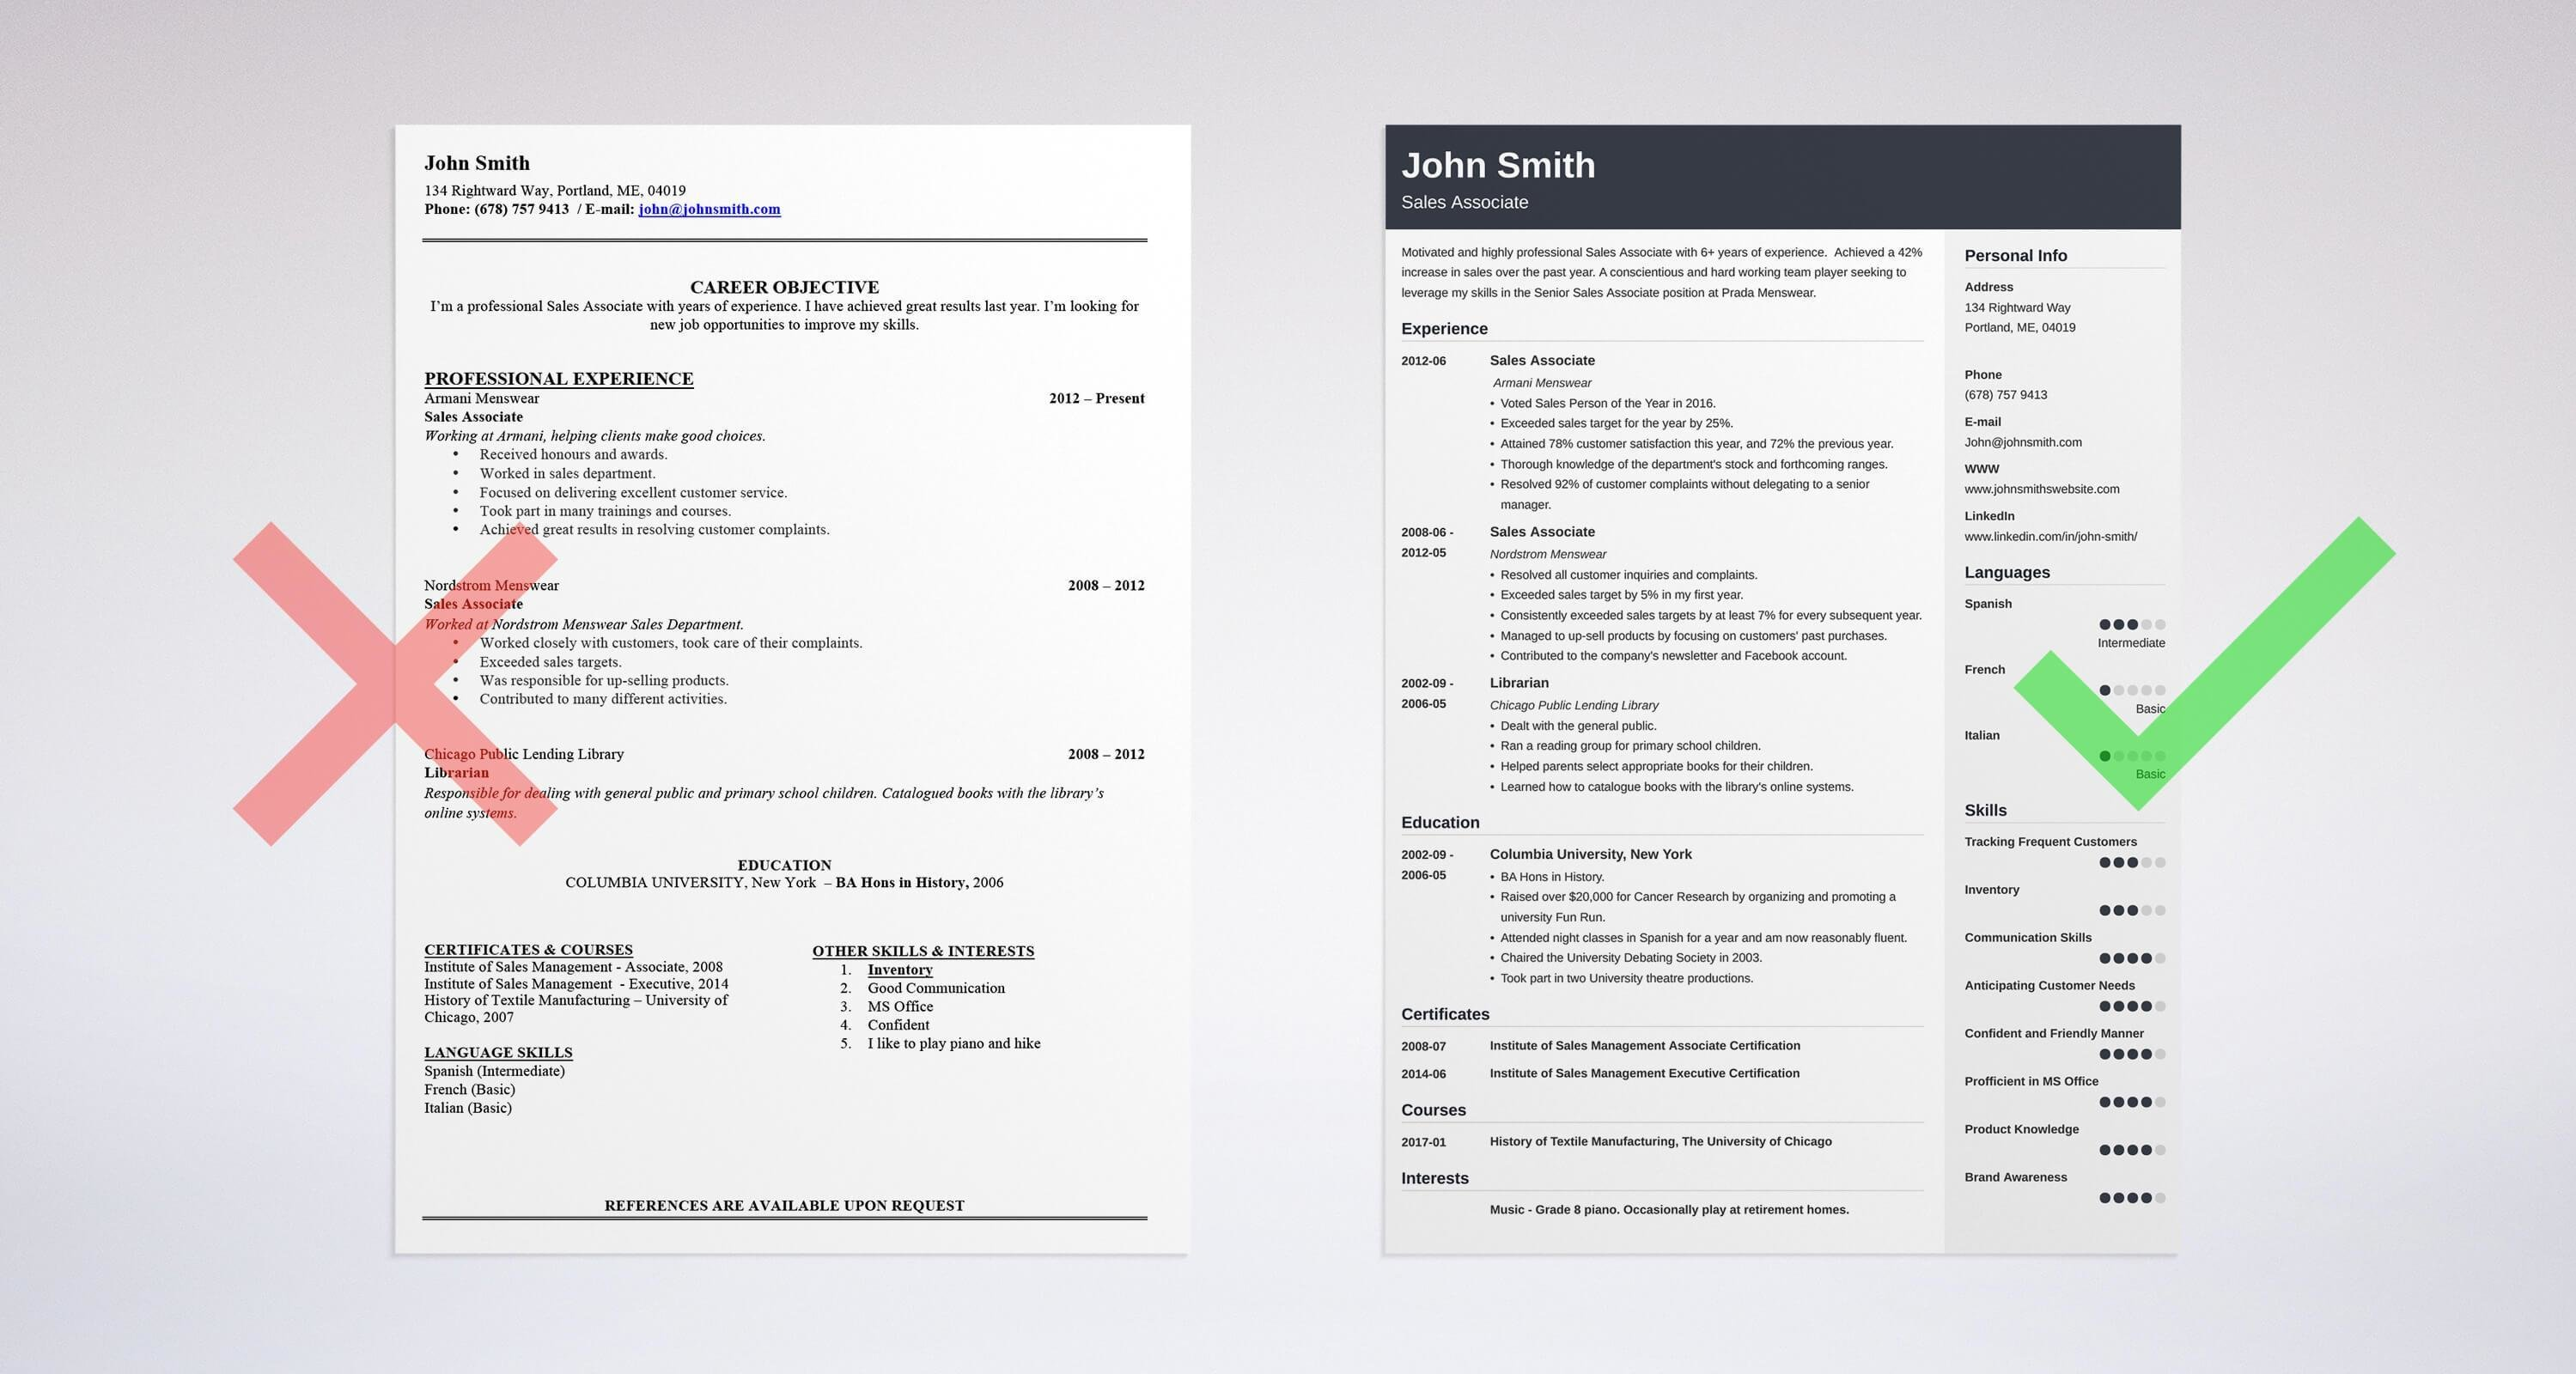 Perfect Professional Resume With A Career Summary With How To Write A Resumer